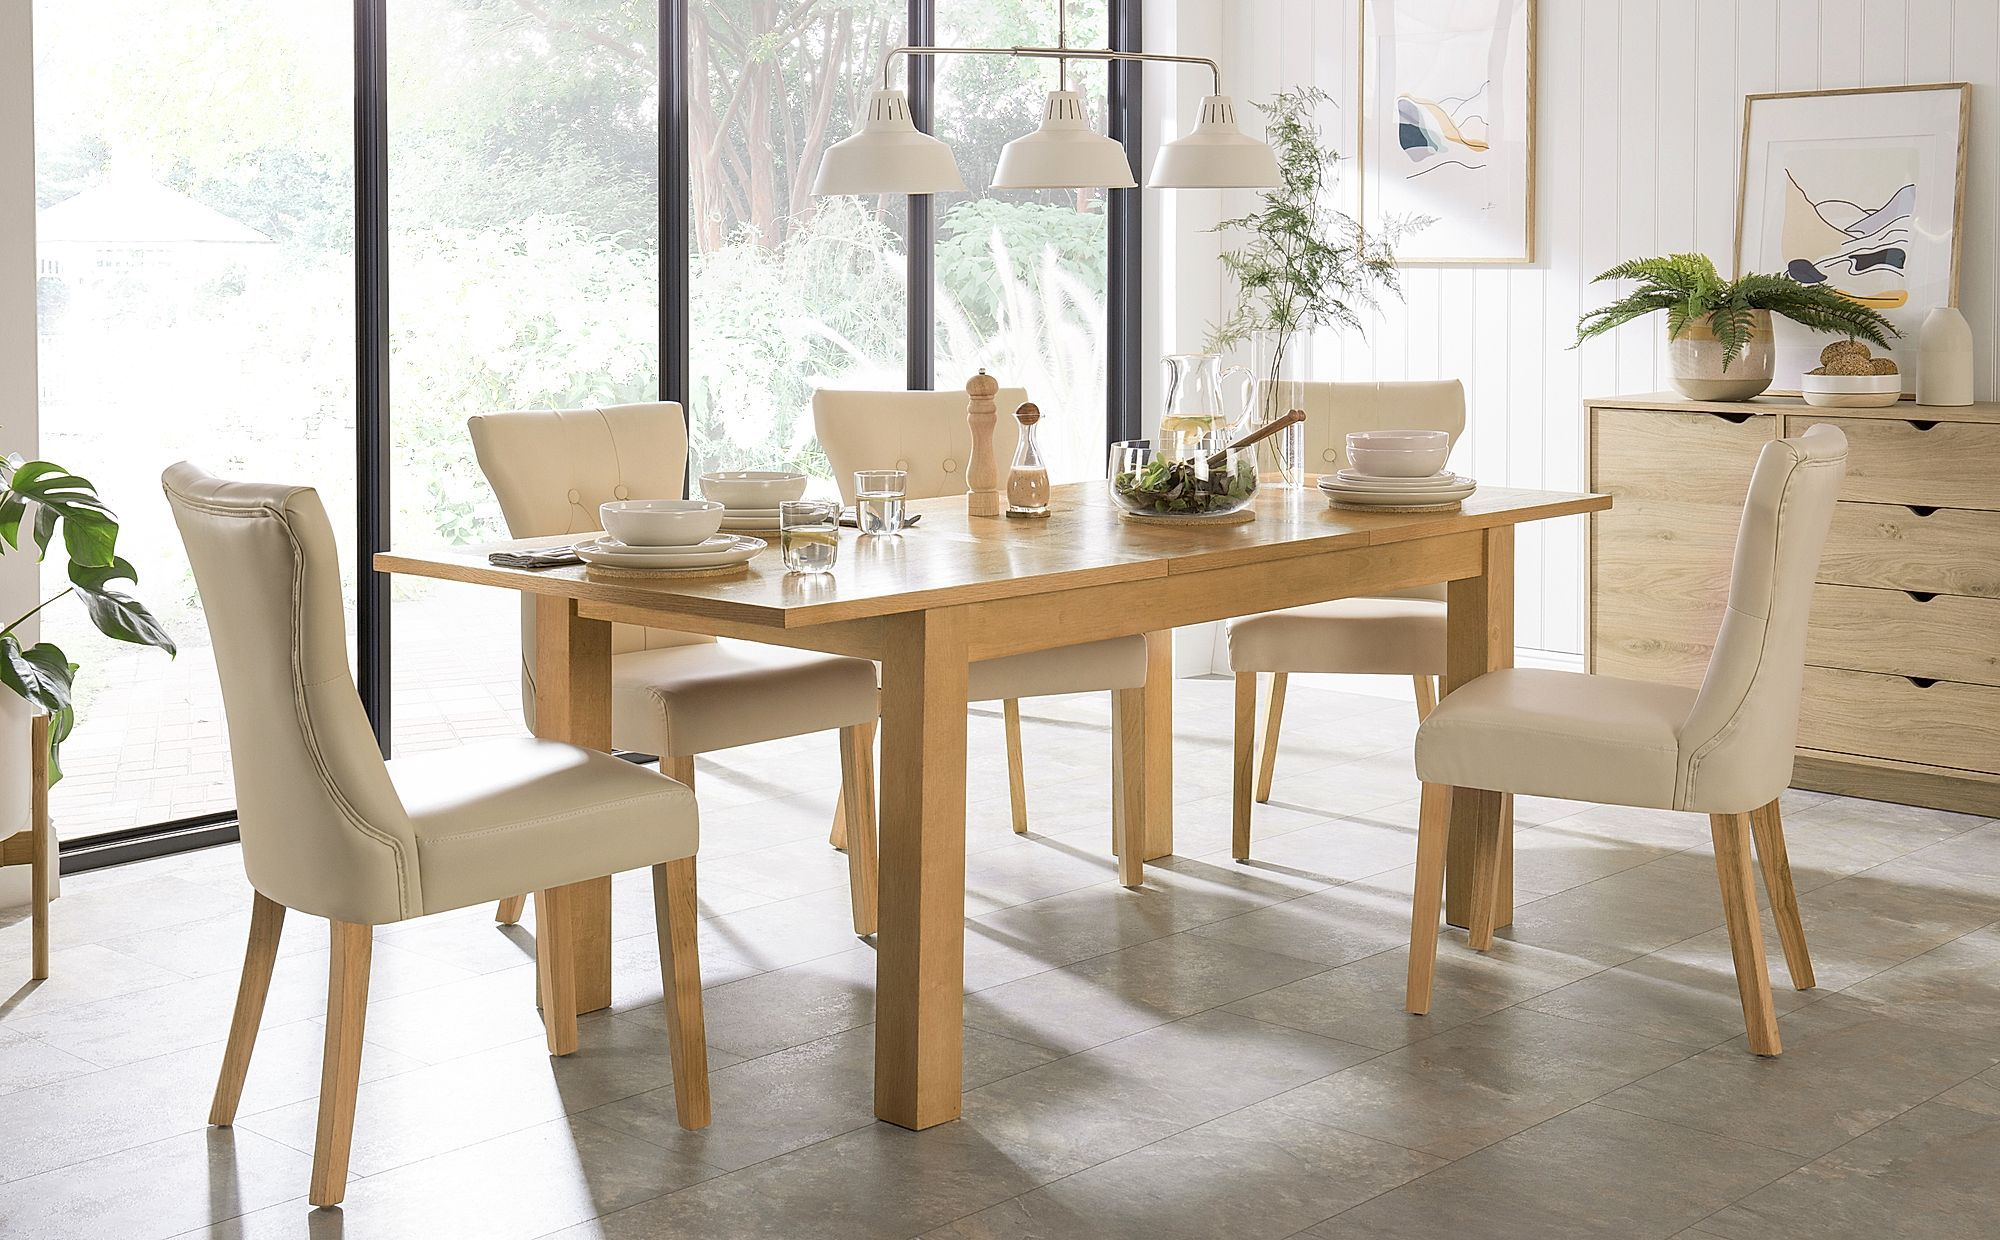 Hamilton 150 200cm Oak Extending Dining Table With 6 Bewley Ivory